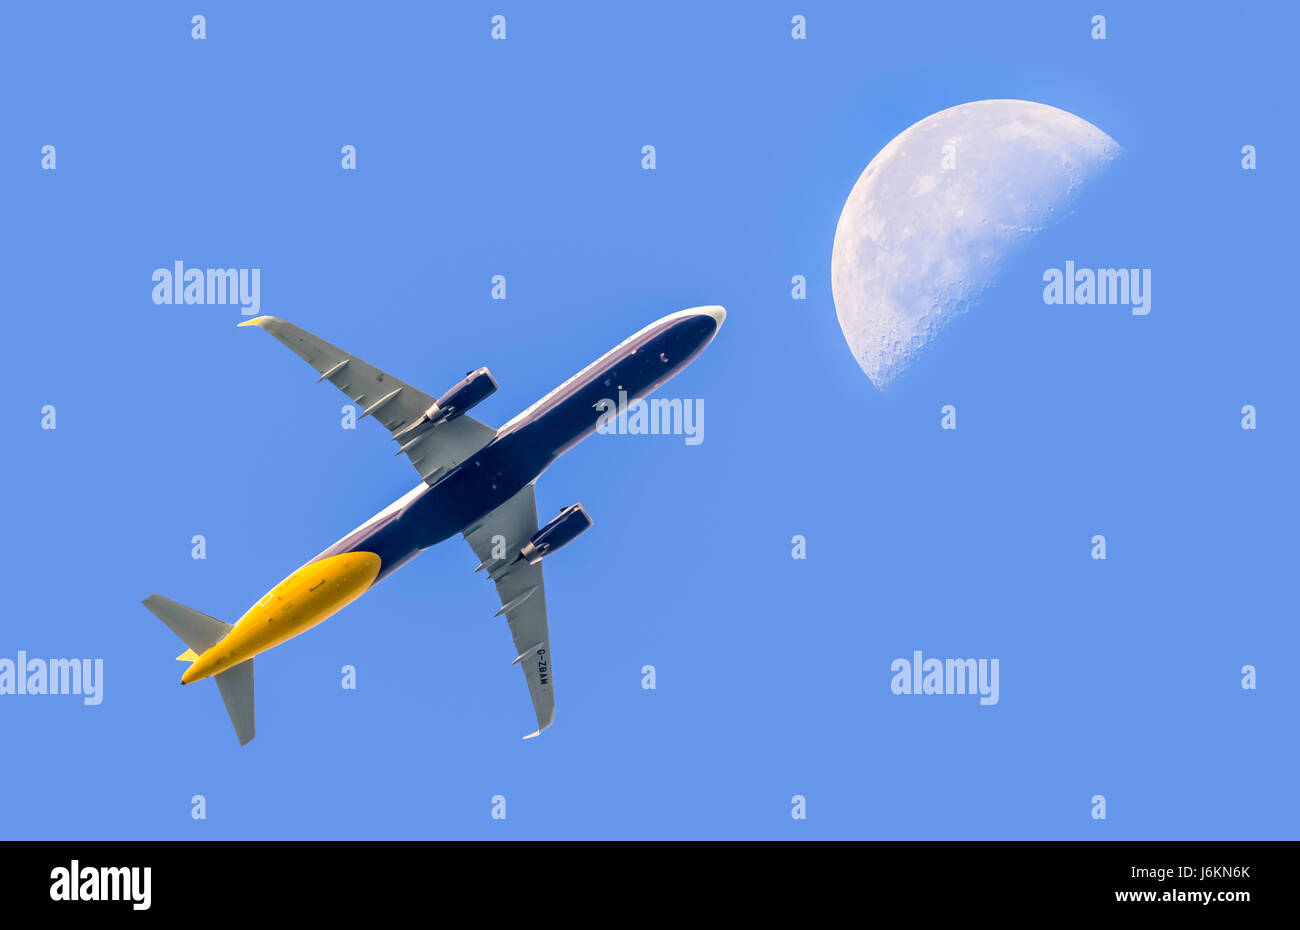 Fly me to the moon. Passenger jet aeroplane flying high against blue sky with the moon in the distance. Air travel. - Stock Image